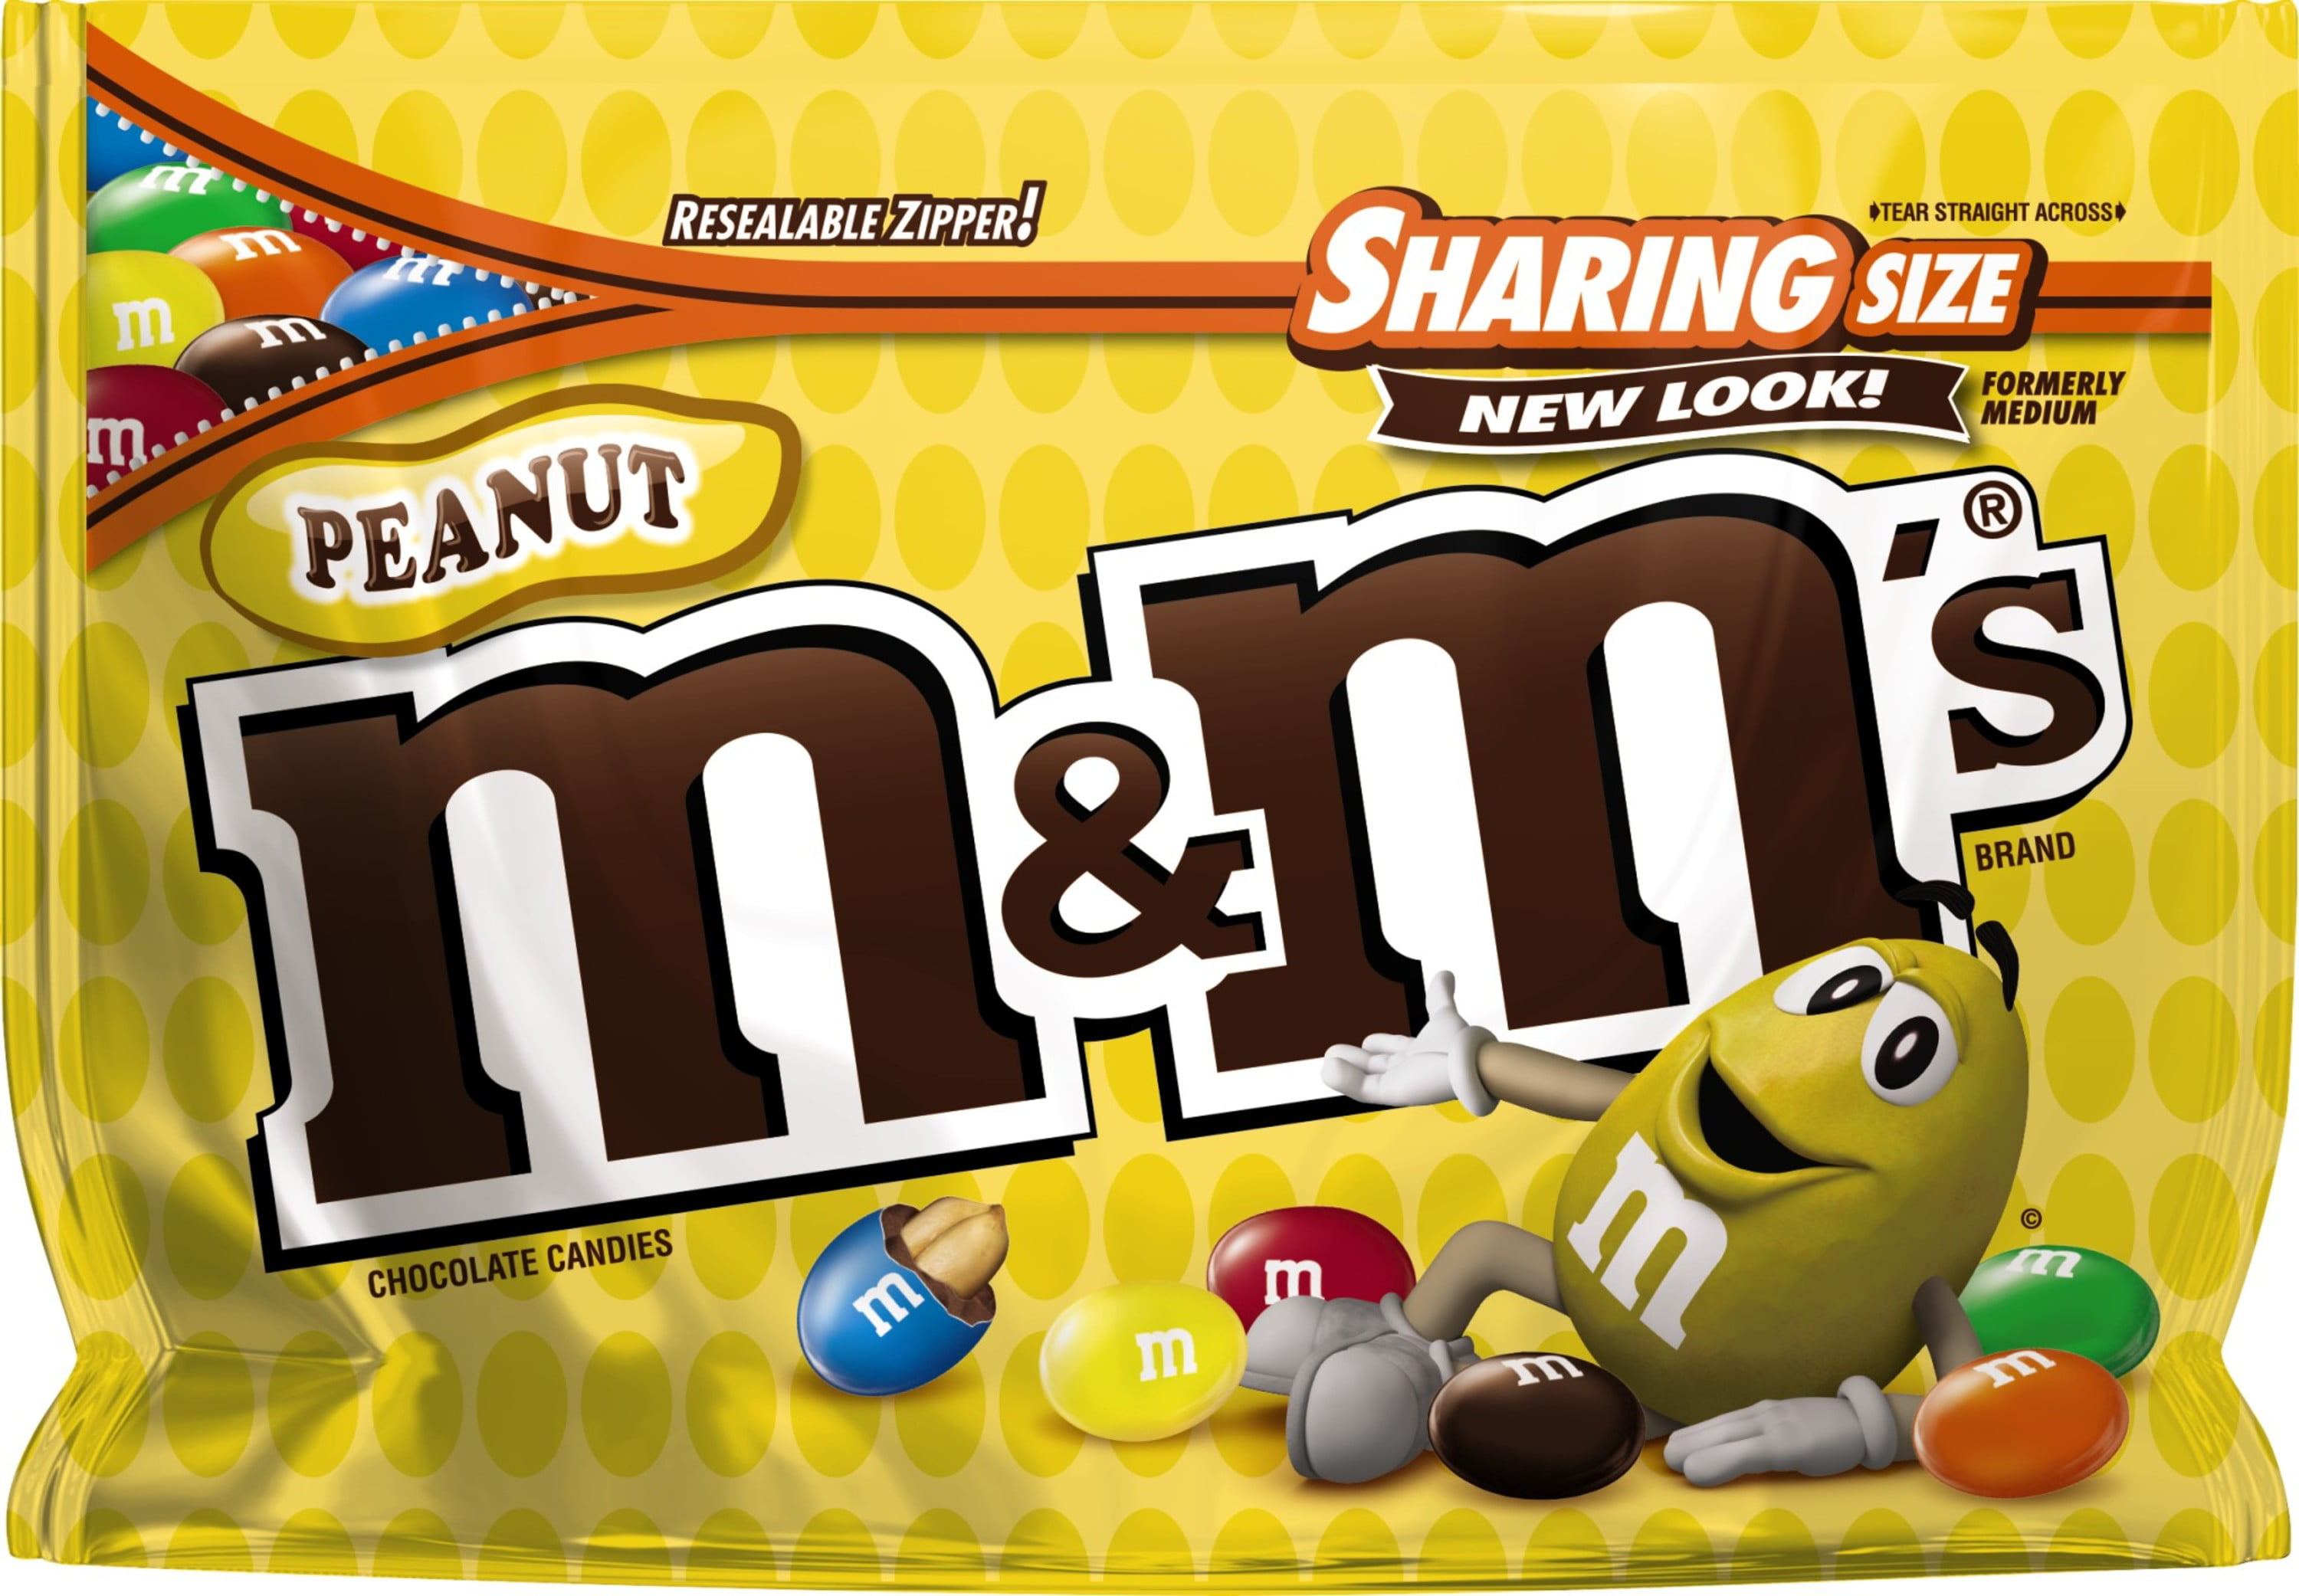 M&M'S Peanut Candy Messages Sharing Size, 10.7 oz. Bag (Packaging Design May Vary)